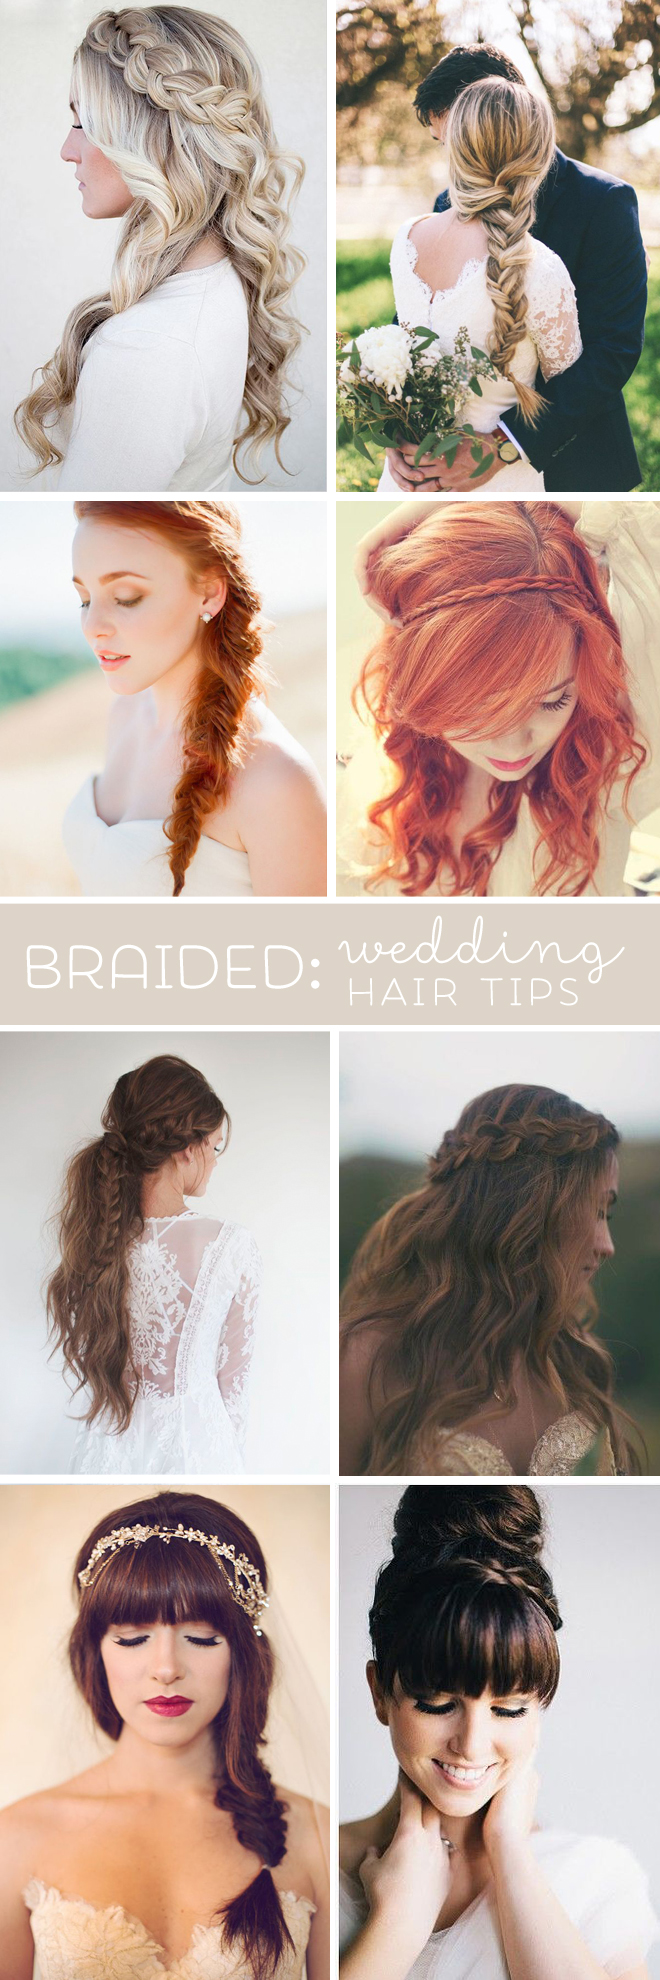 "Wedding hair tips for ""braids"""